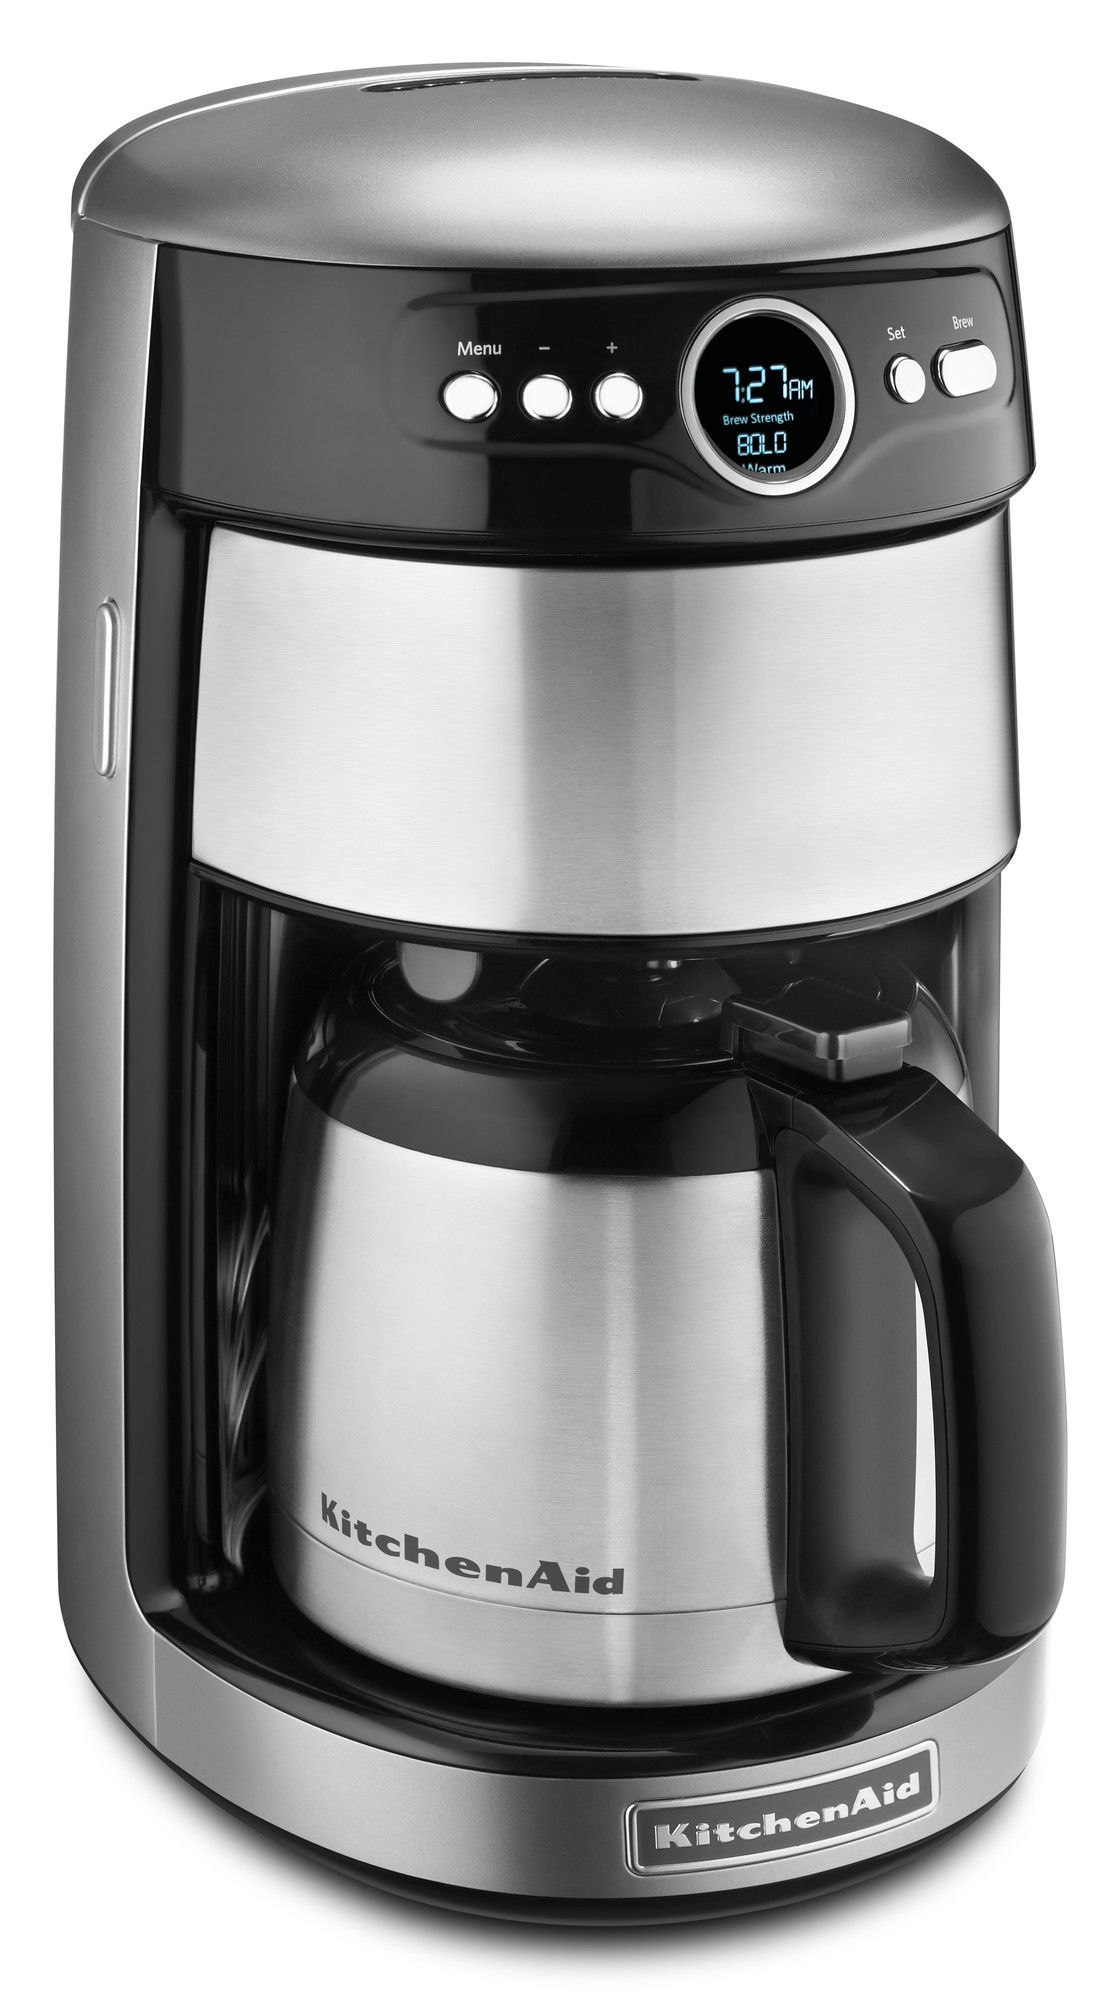 Kitchenaid 12 Cup Thermal Carafe Coffee Maker Thermal Coffee Maker Kitchen Aid Coffee Maker Coffee Maker